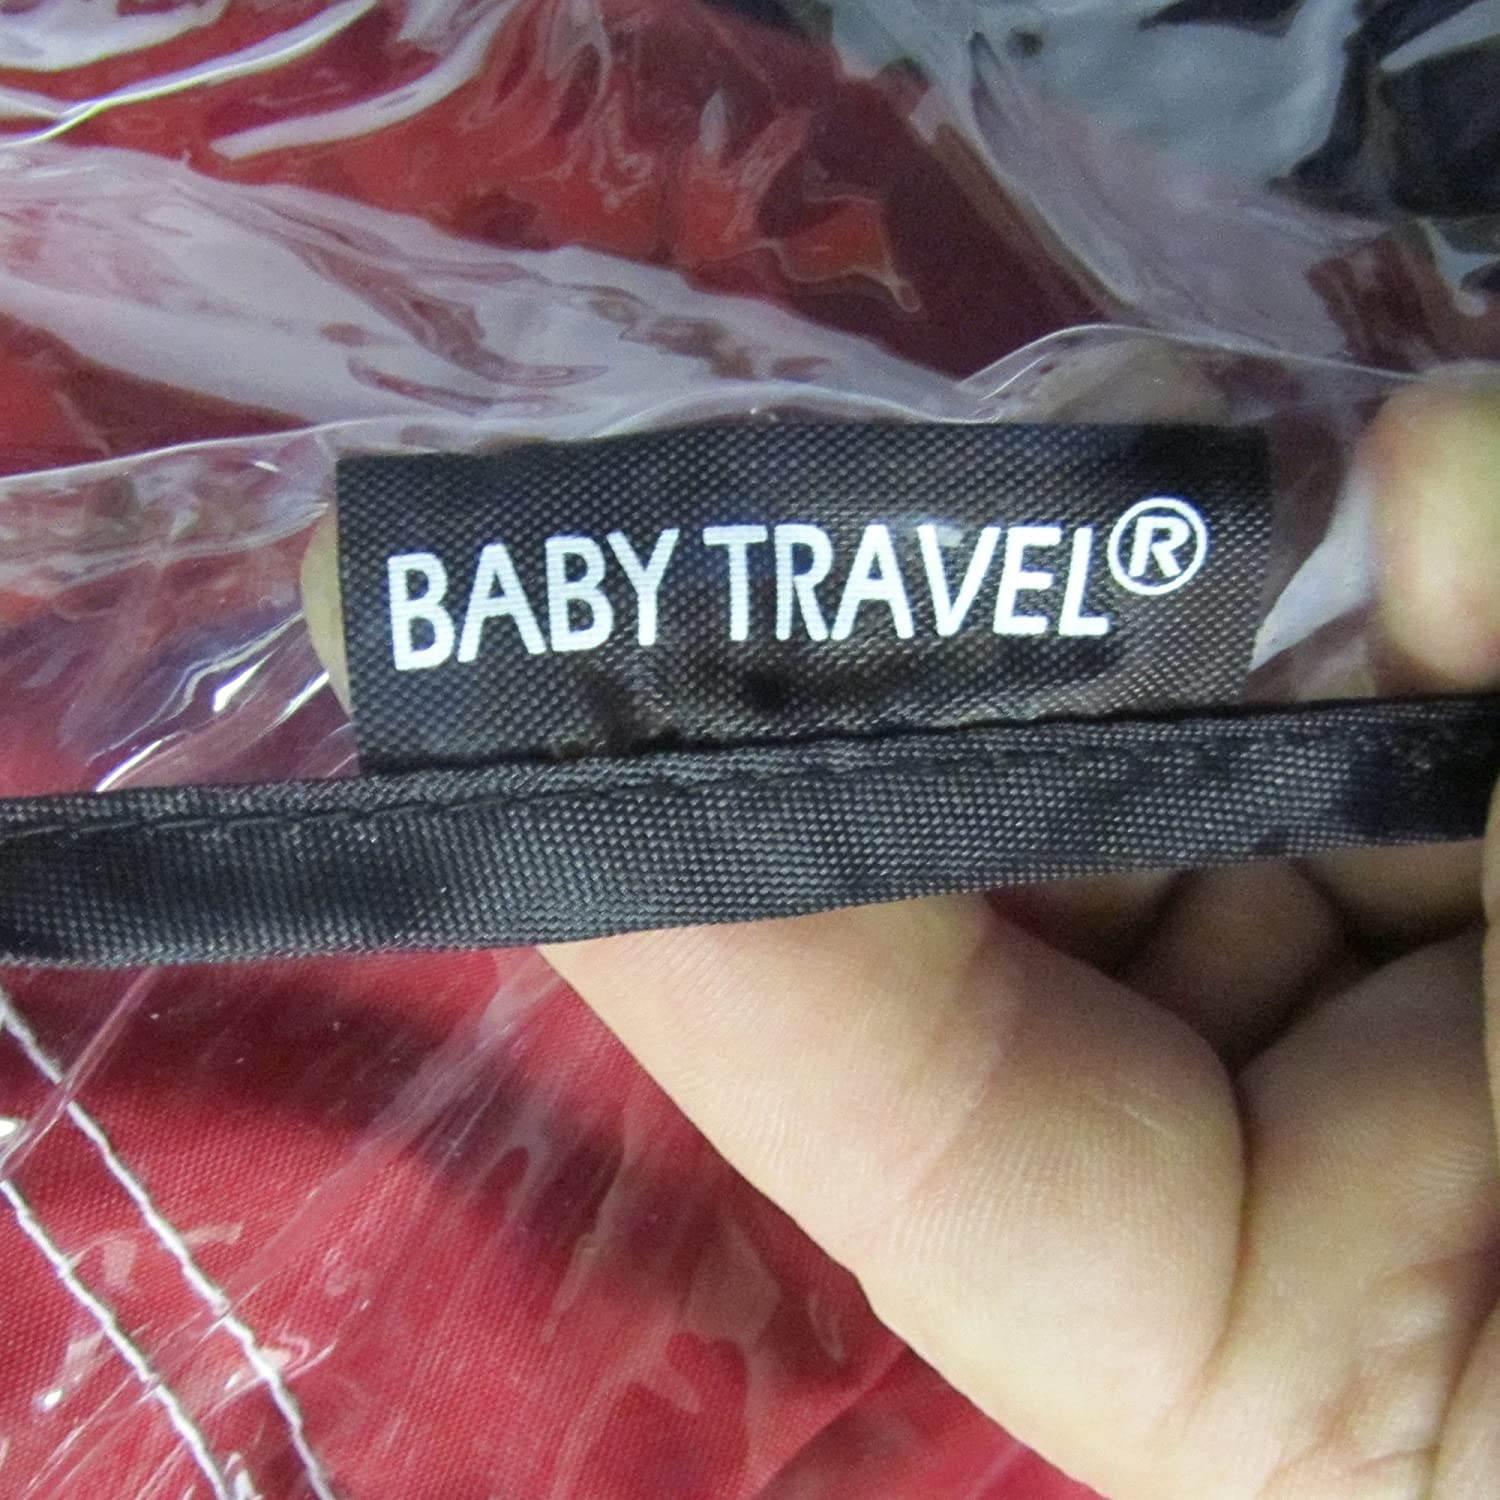 Baby Travel Infant Carrier Raincover for Use With Baby-Safe Plus And Baby-Safe Plus BT401/BBS+